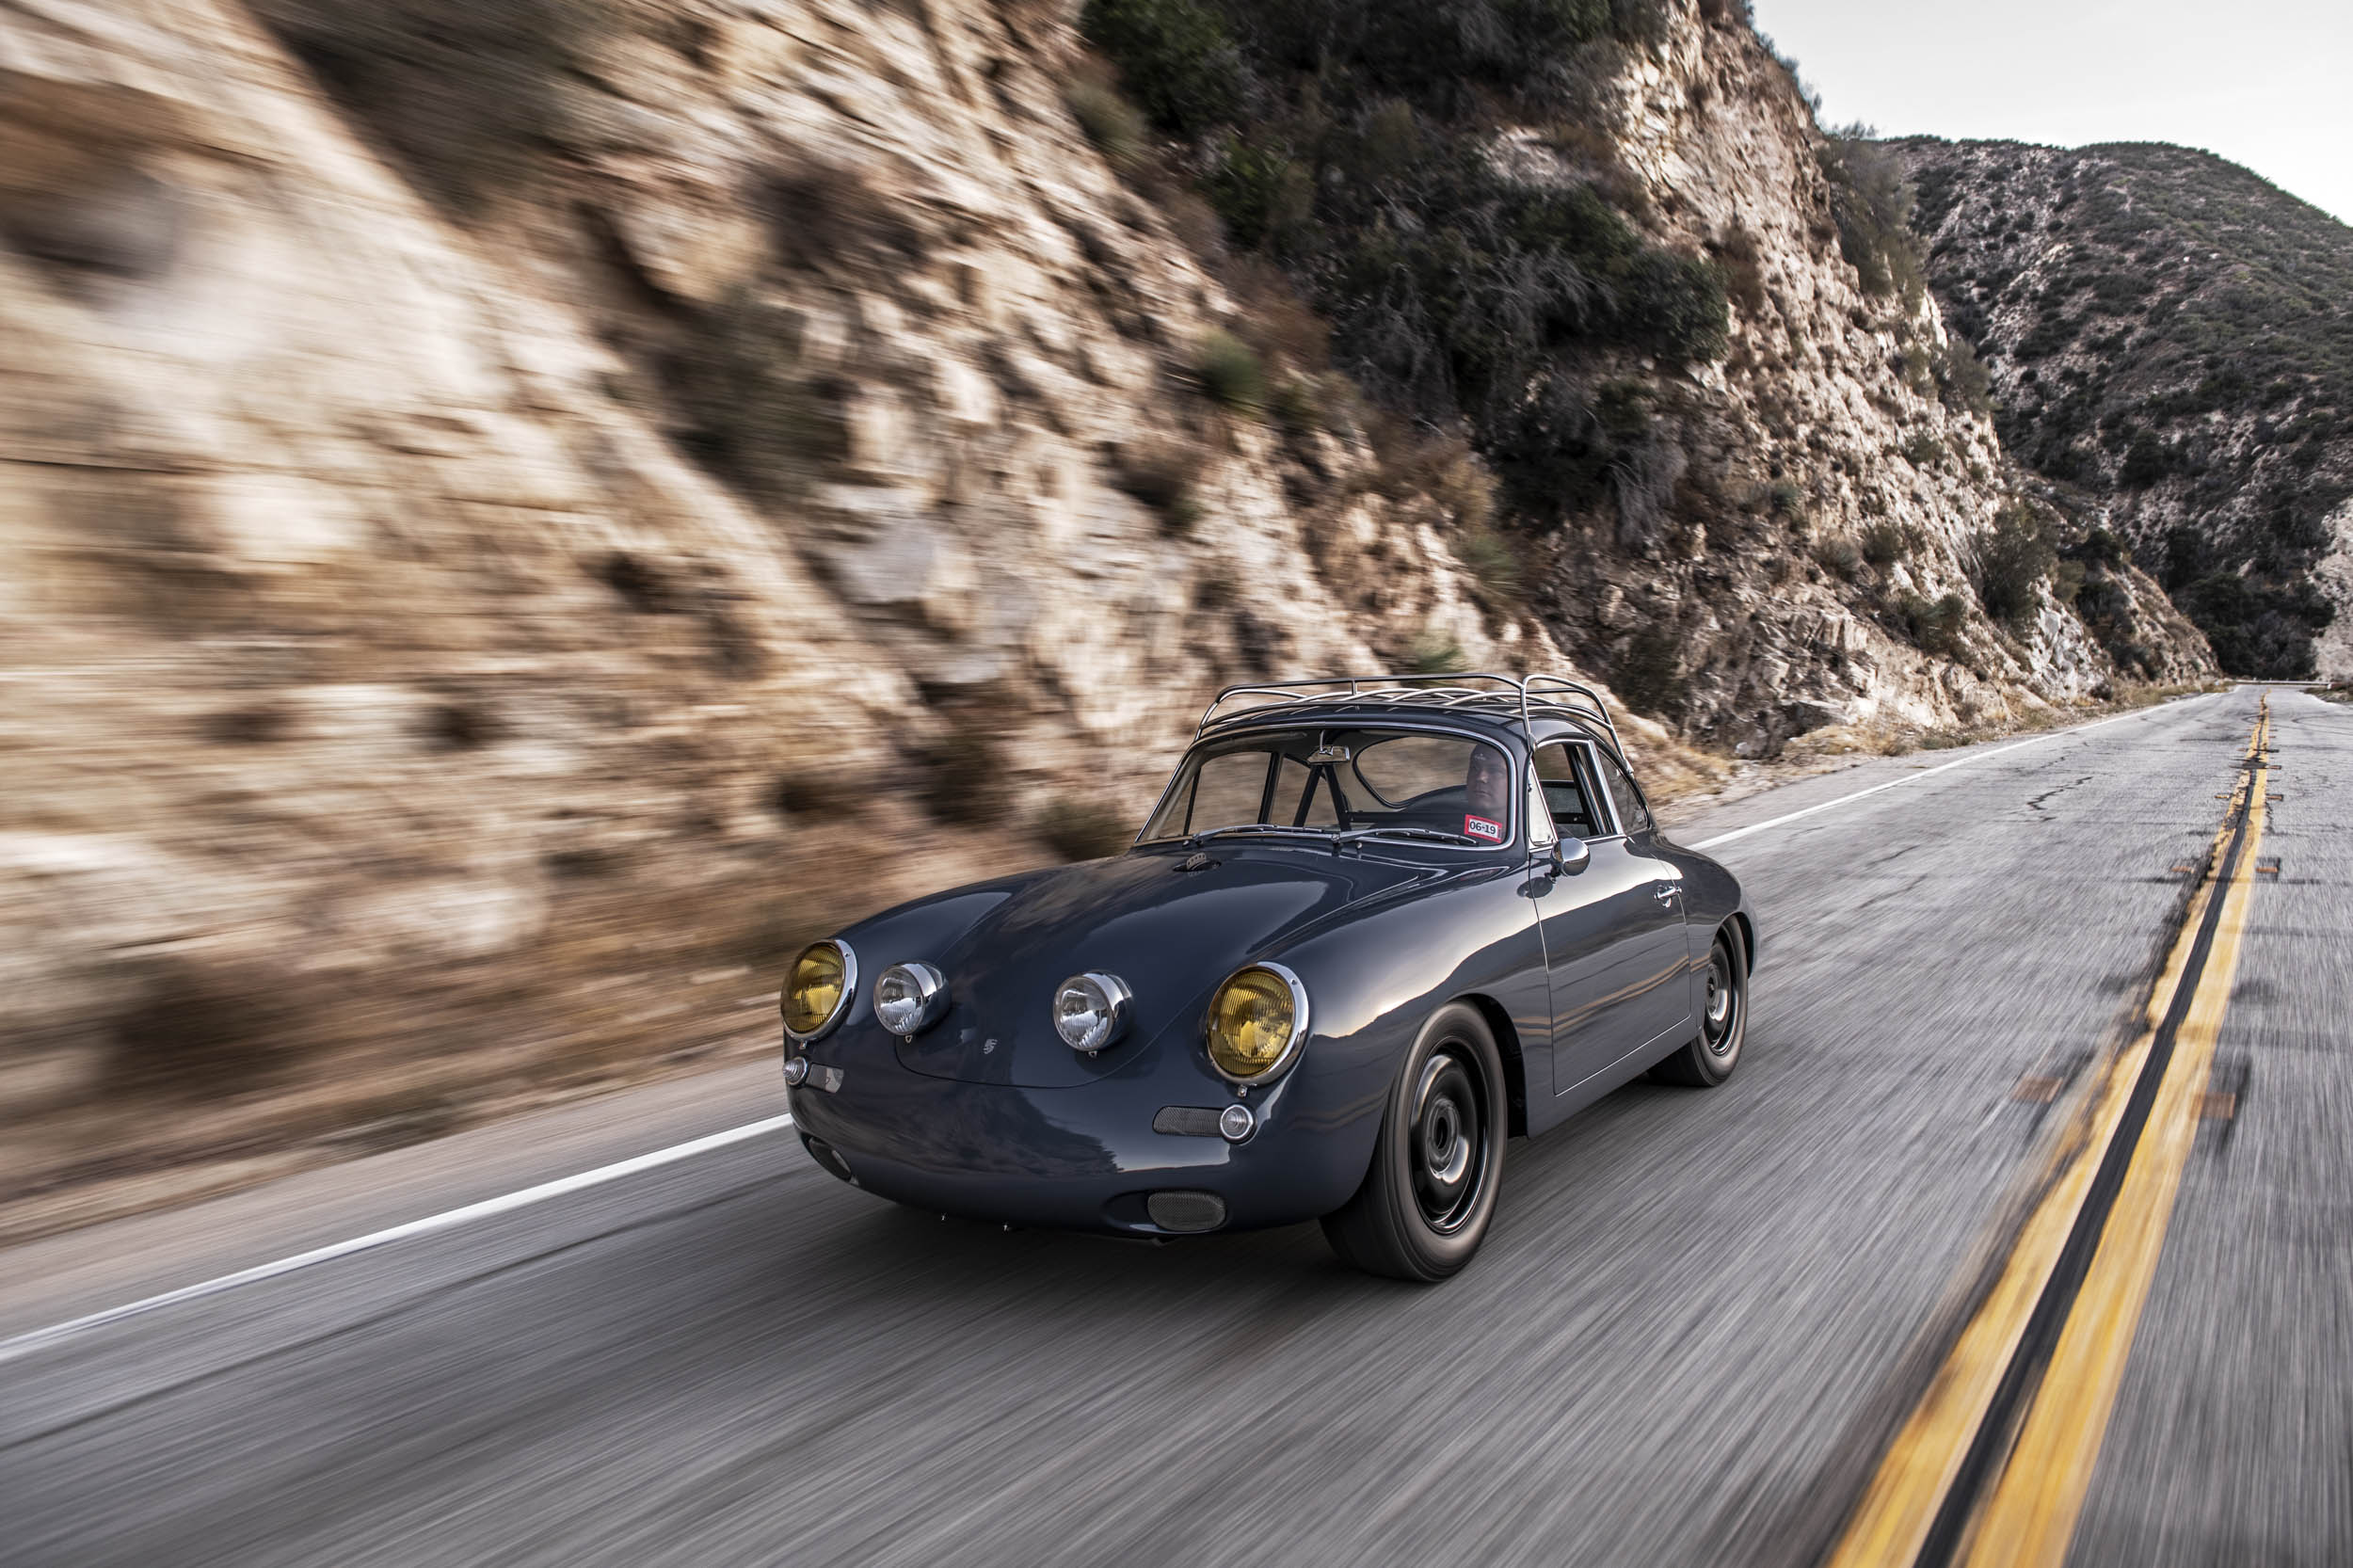 Emory Porsche 356 C4S Allrad driving on the highway